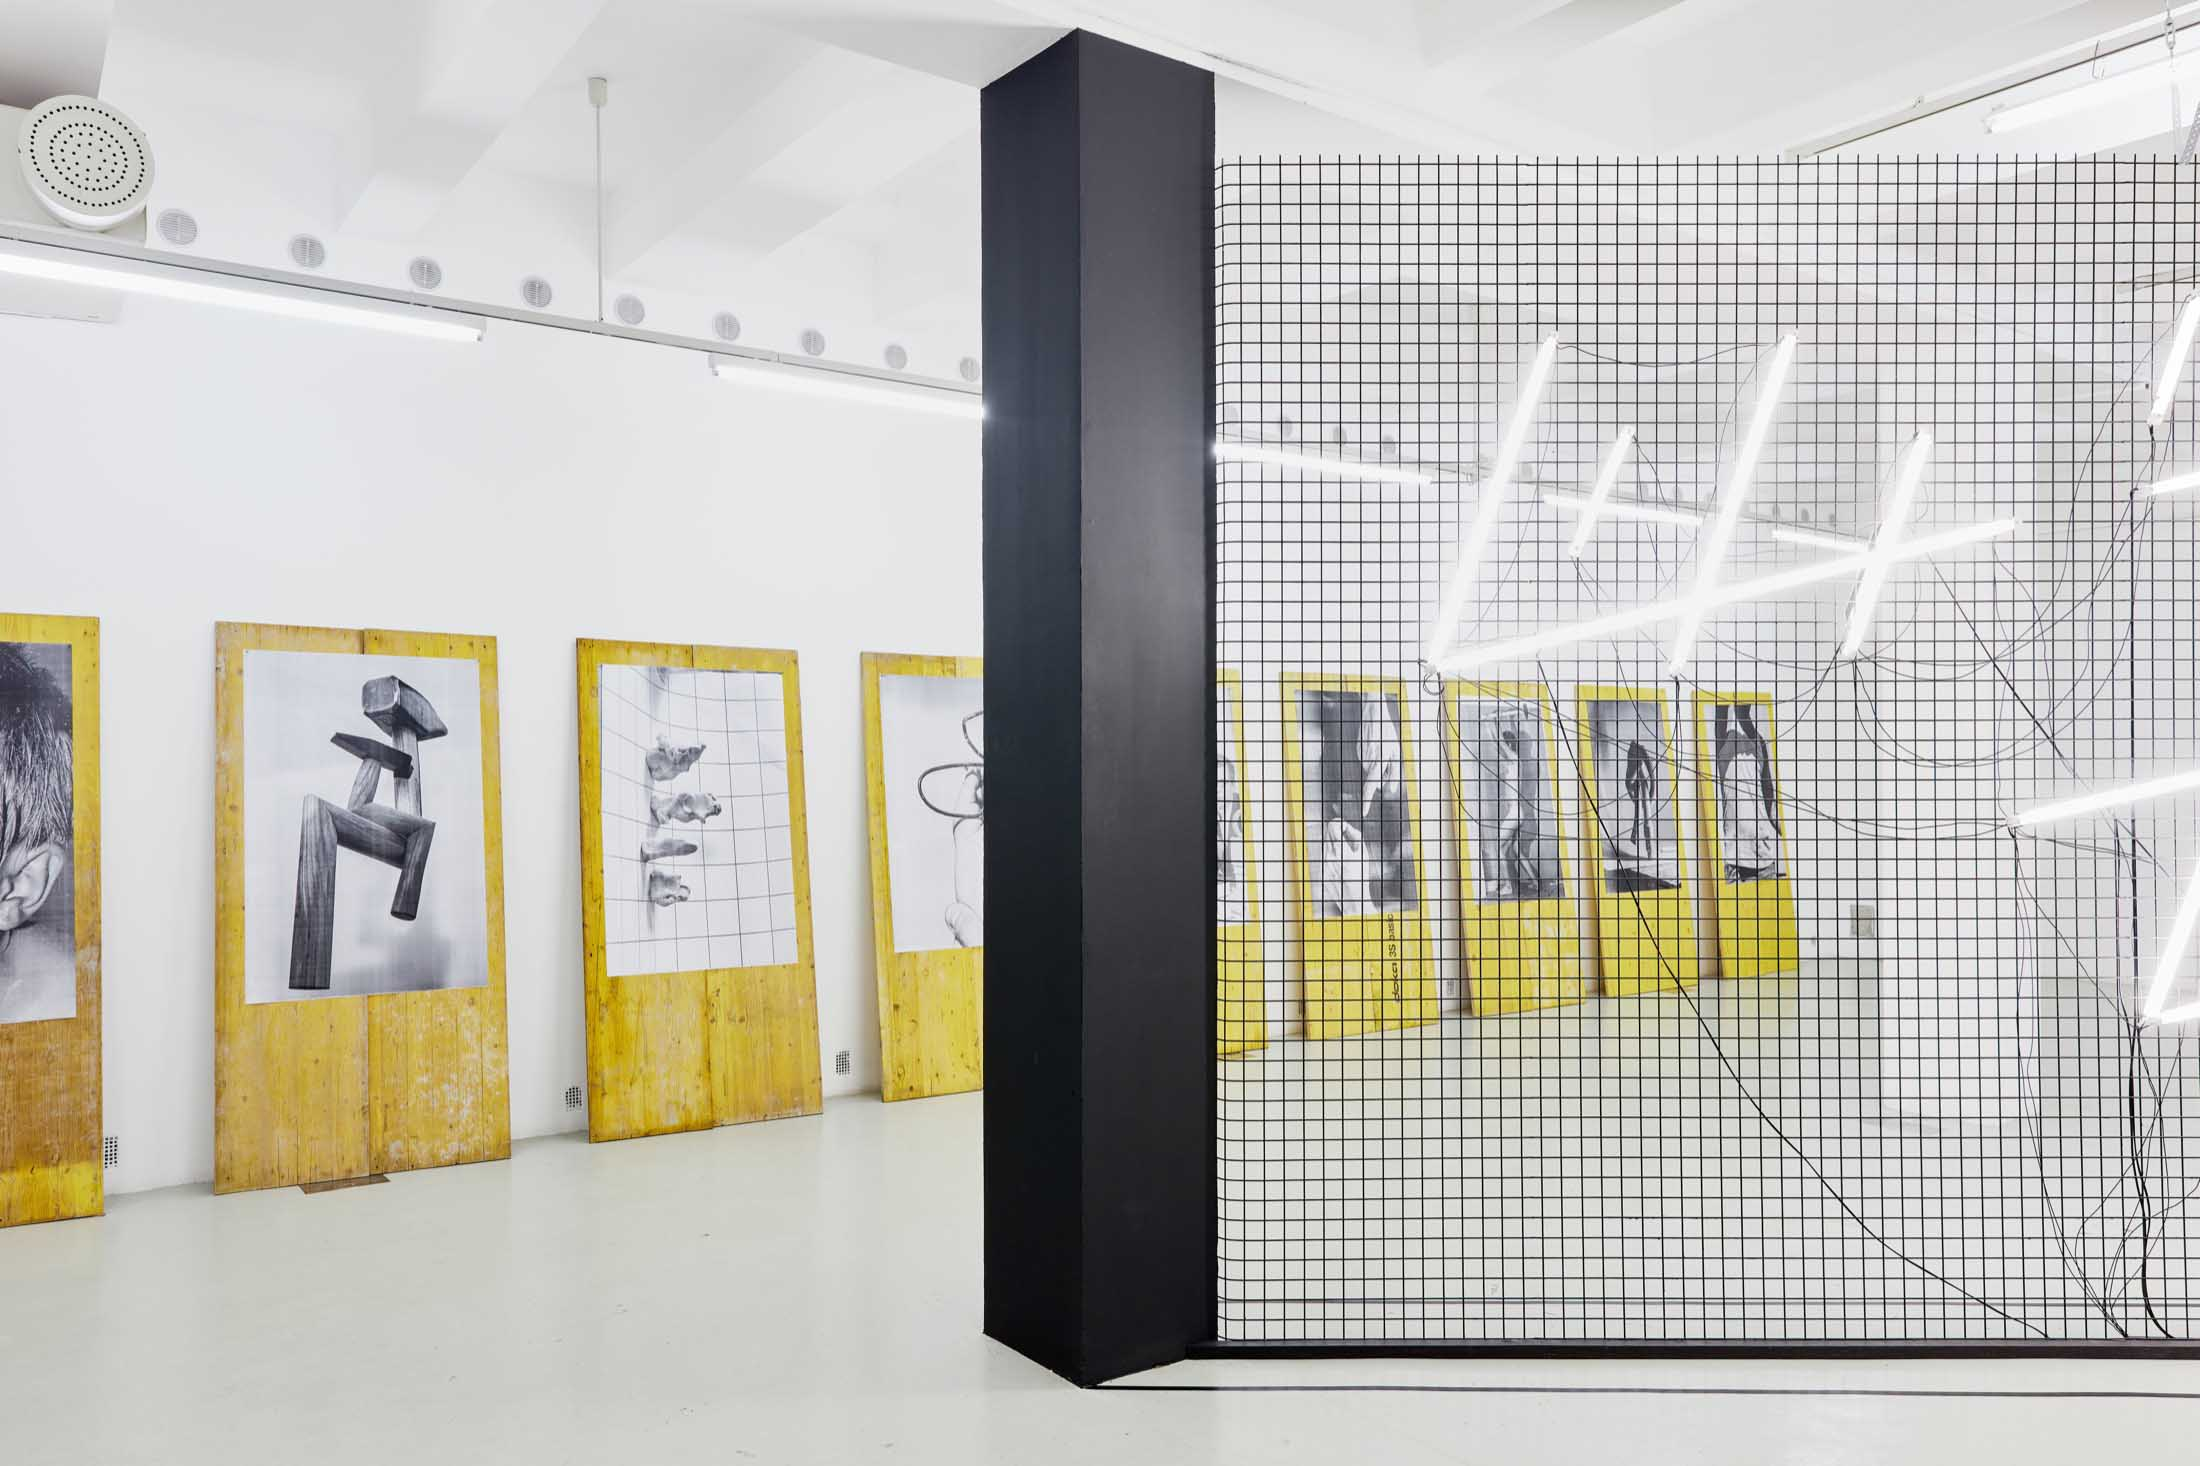 Life is Techno, Trafó Gallery, Budapest 2018, exhibition view